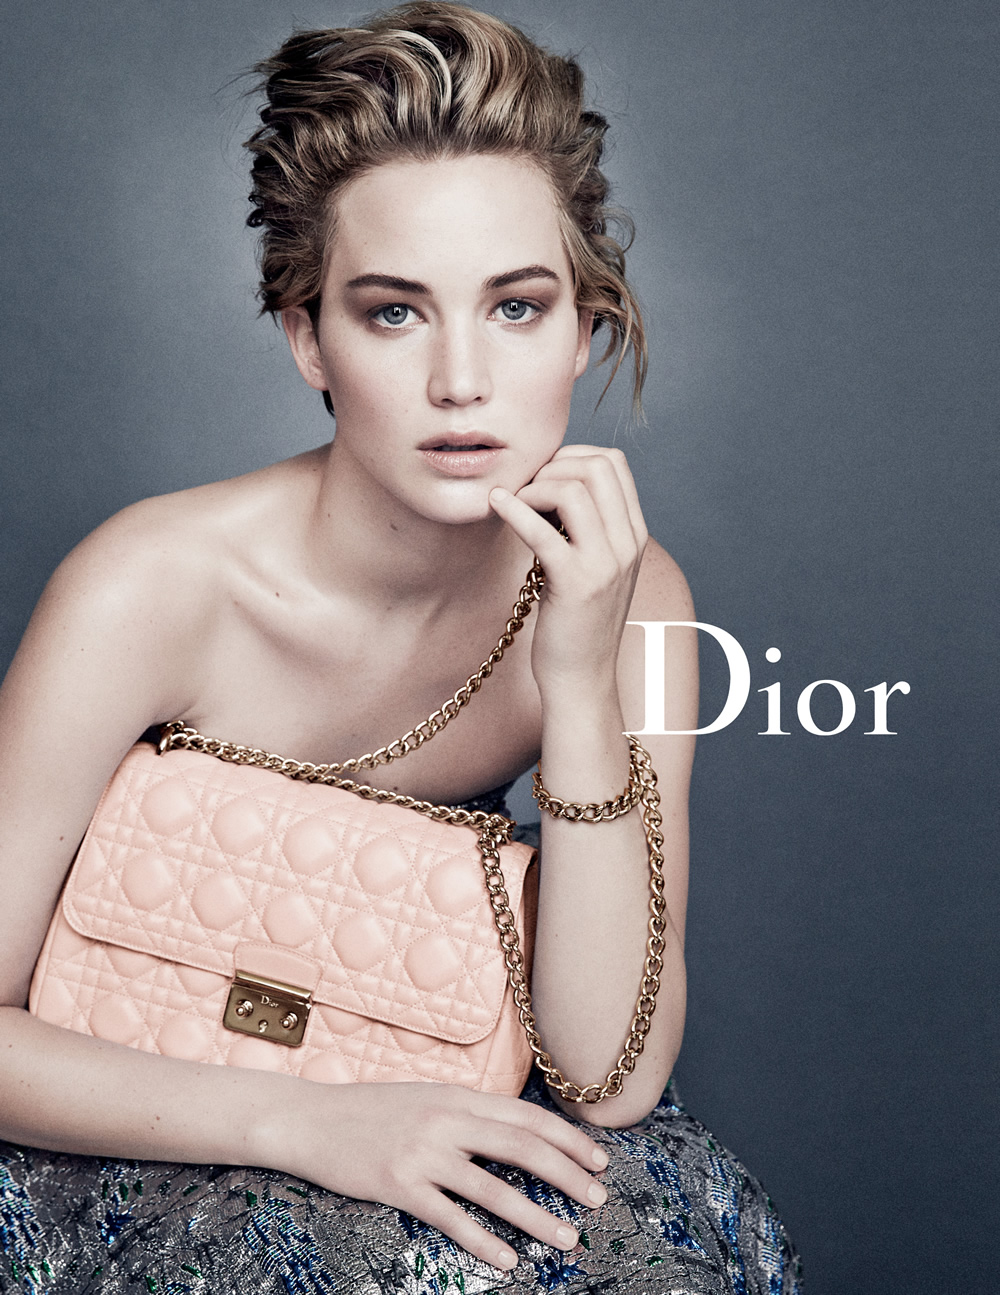 jennifer-lawrence-miss-dior-2